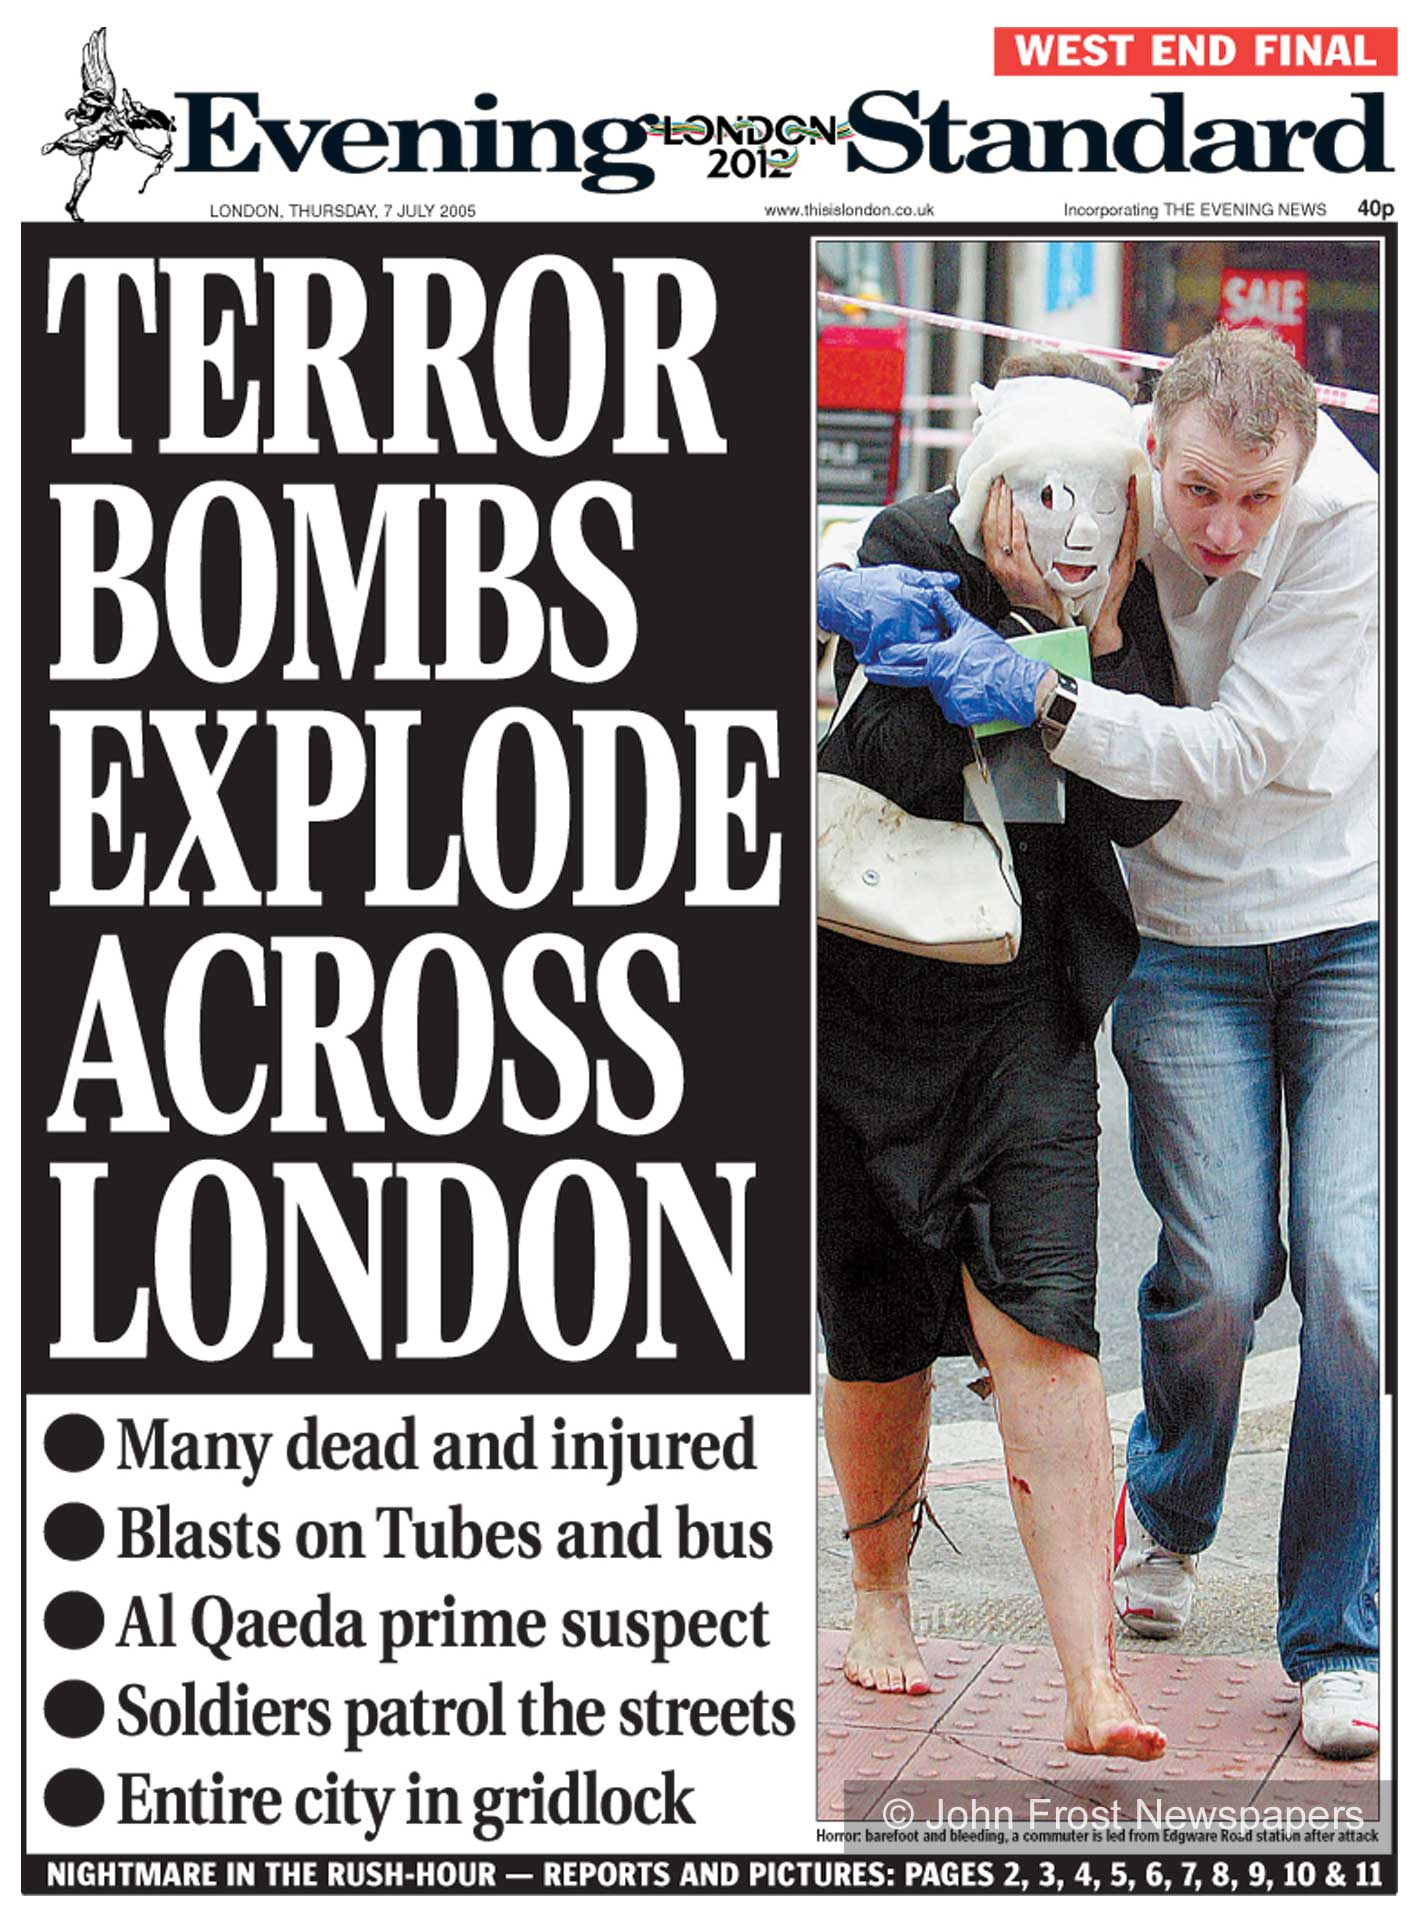 London 7/7 terrorist attacks